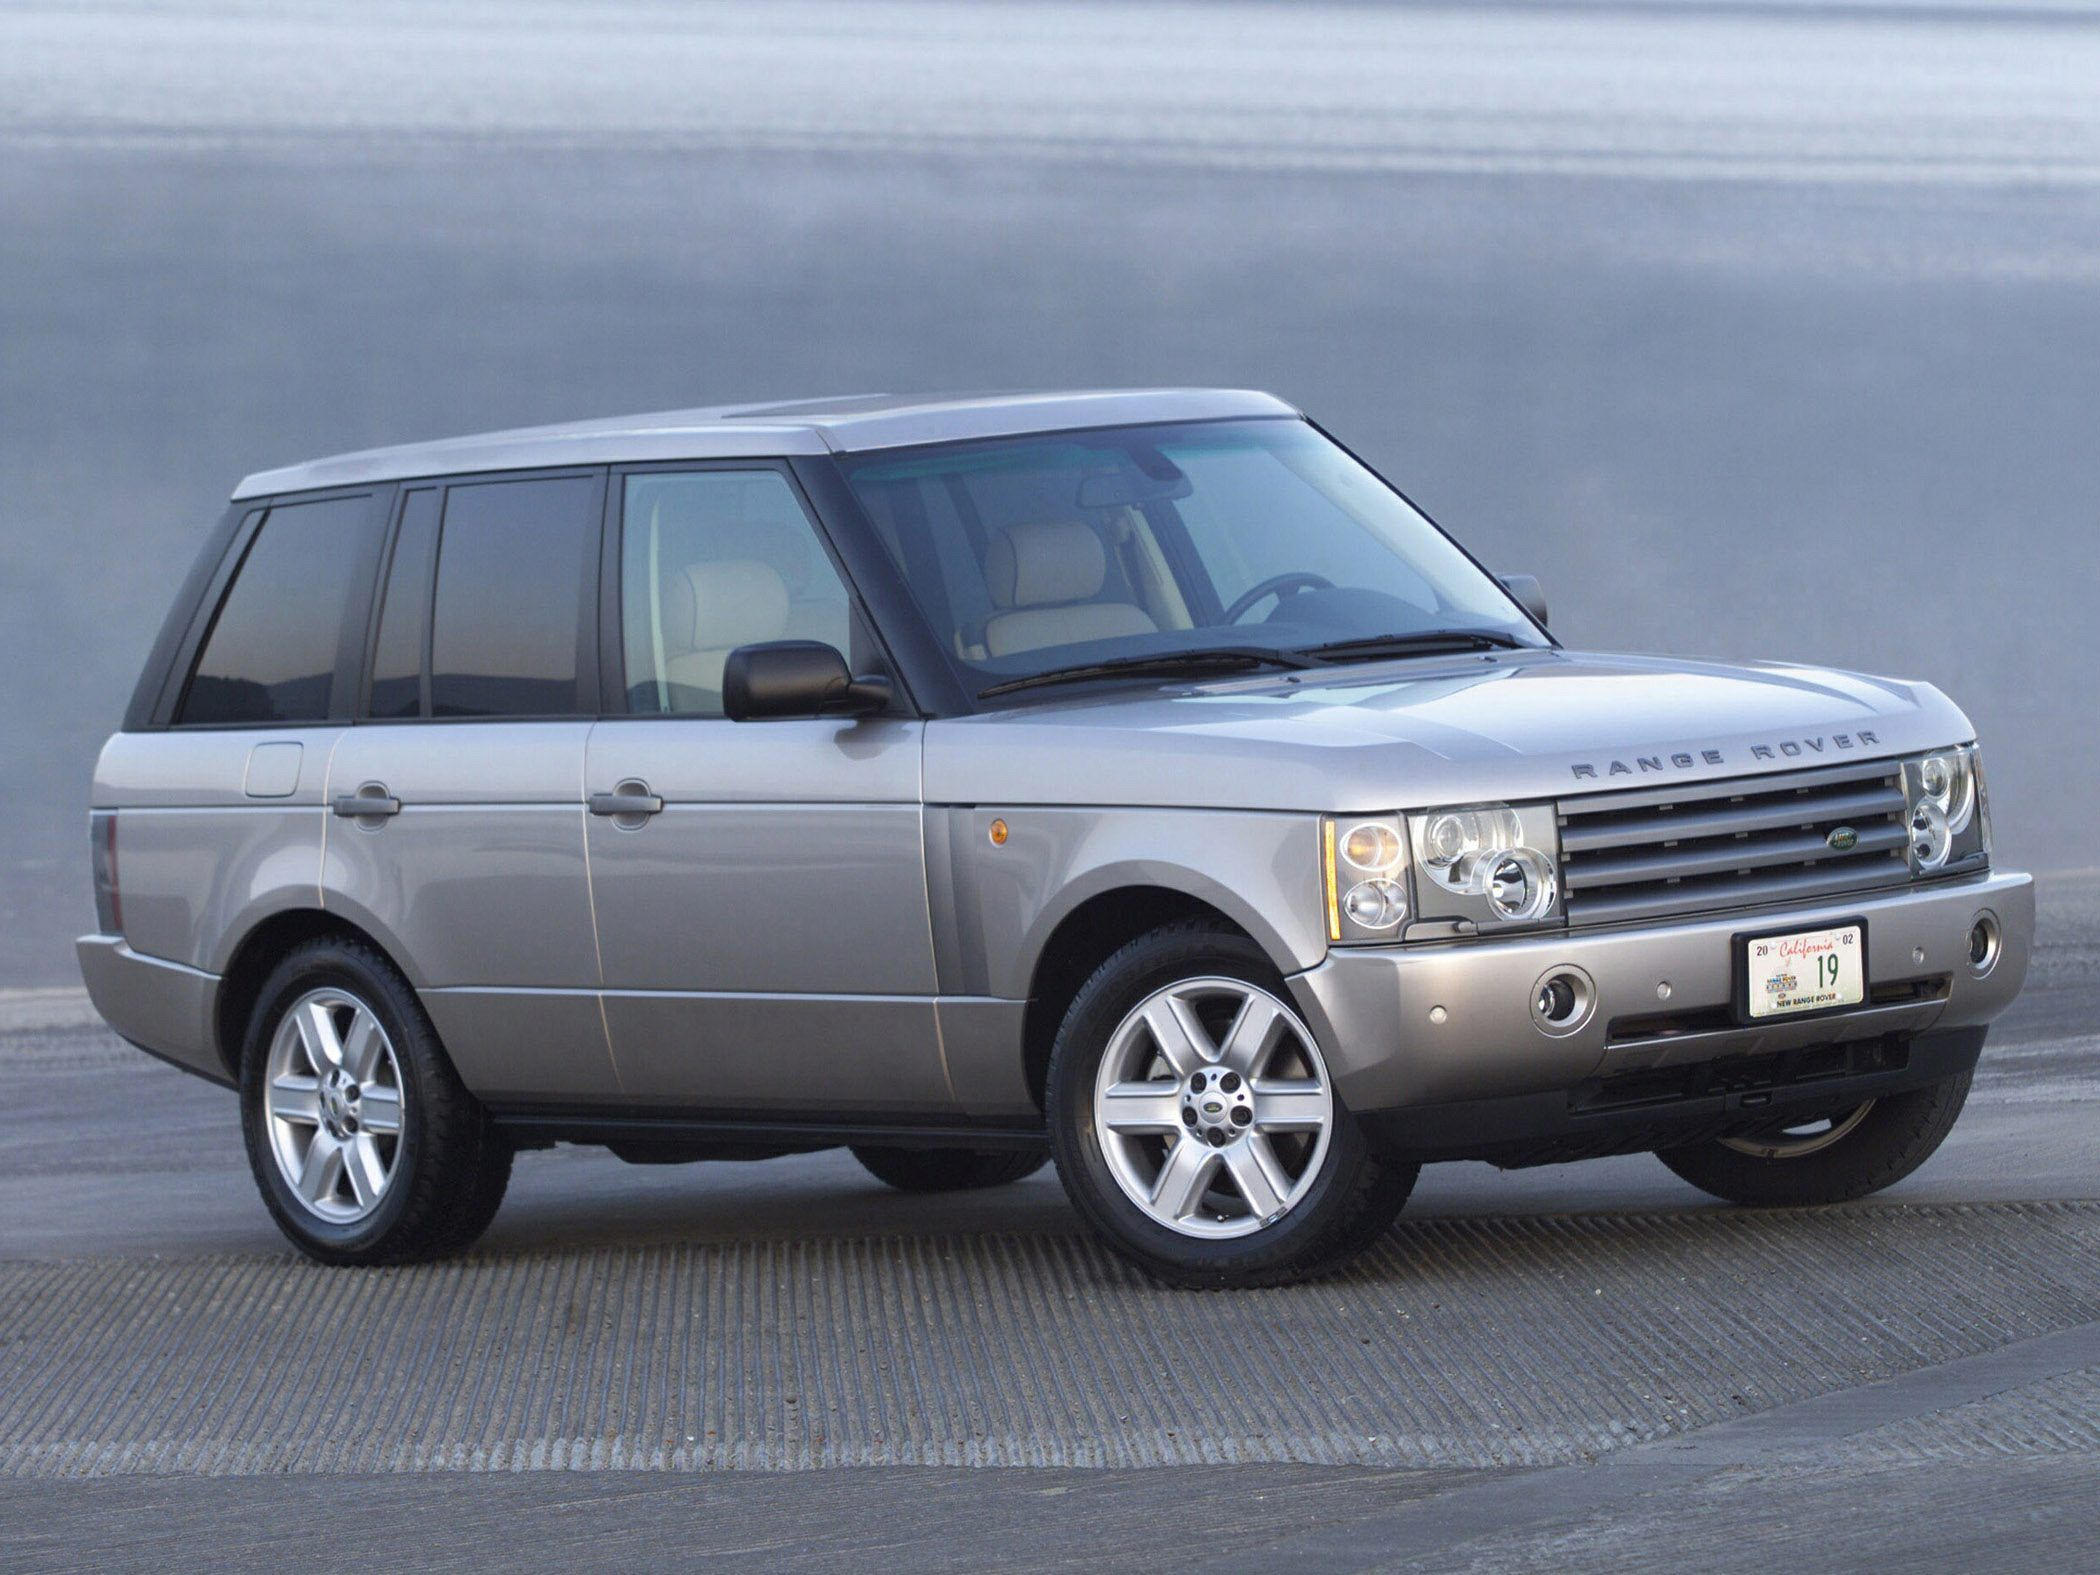 Used Land Rover Range Rover Best Used Car Deals On Land Rover Range Rover Used Range Rover Online Http Www Iseecars Range Rover Hse Range Rover Land Rover